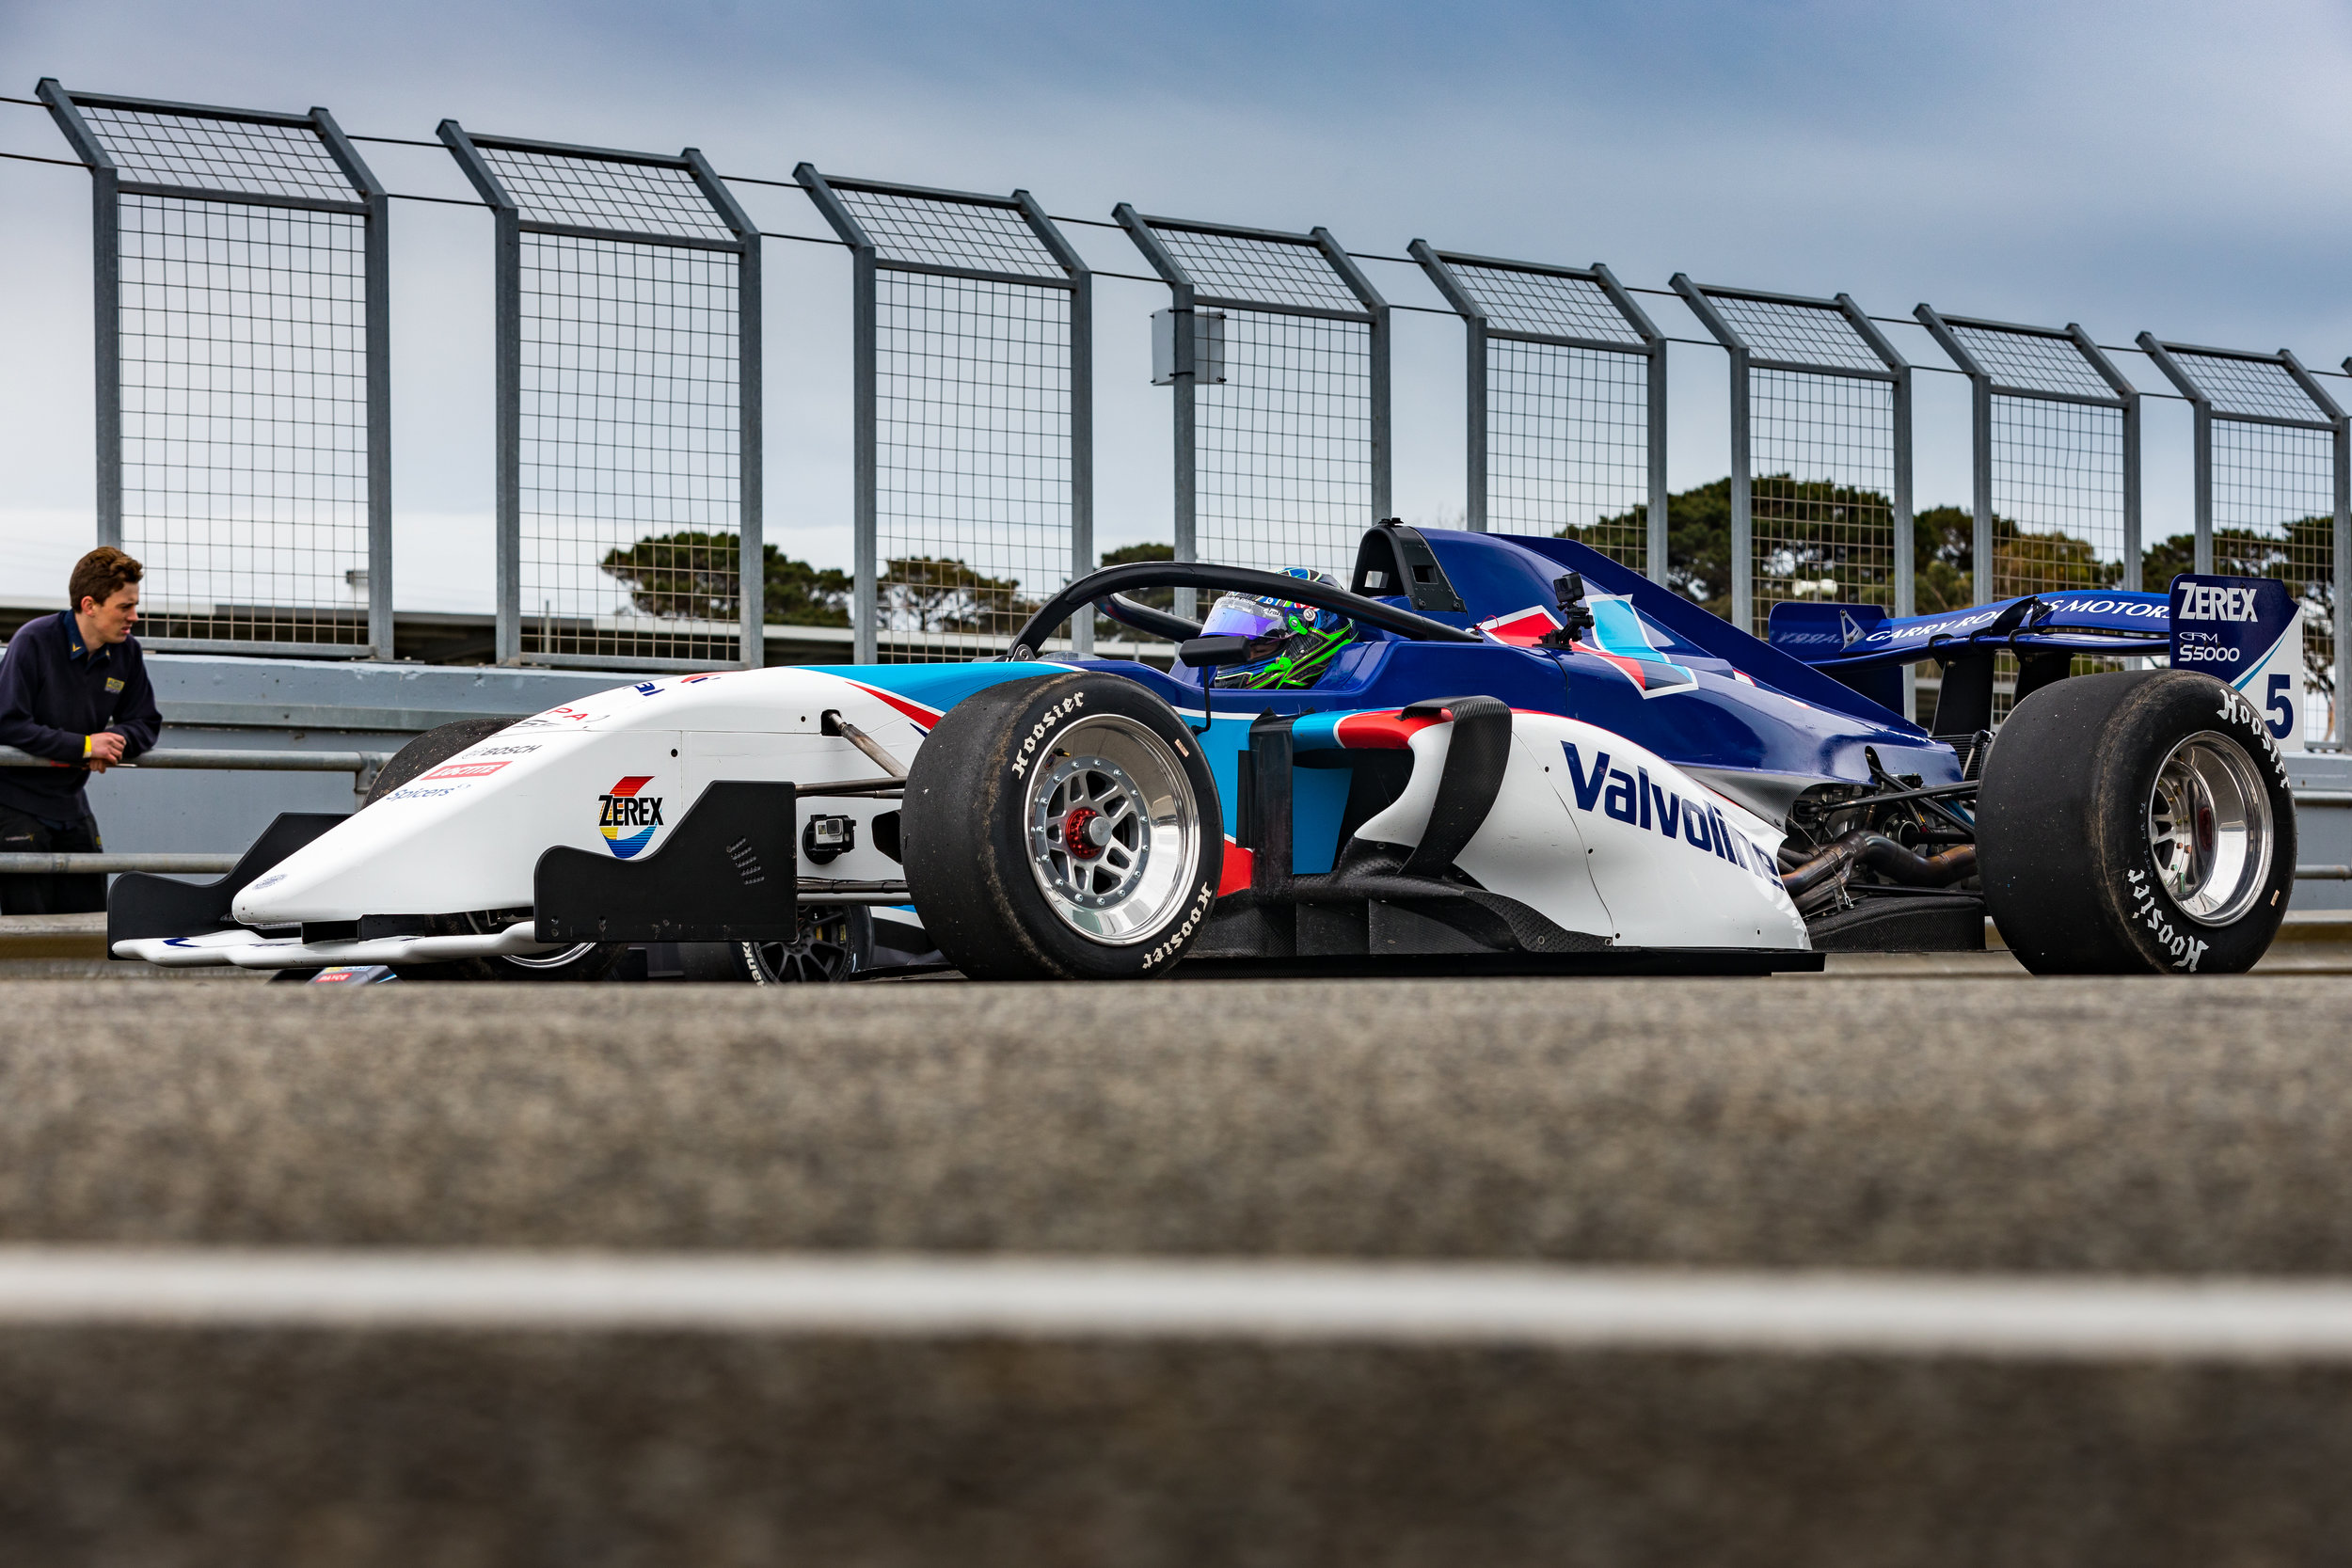 SBS to broadcast S5000 debut live on free-to-air TV — Highway F1